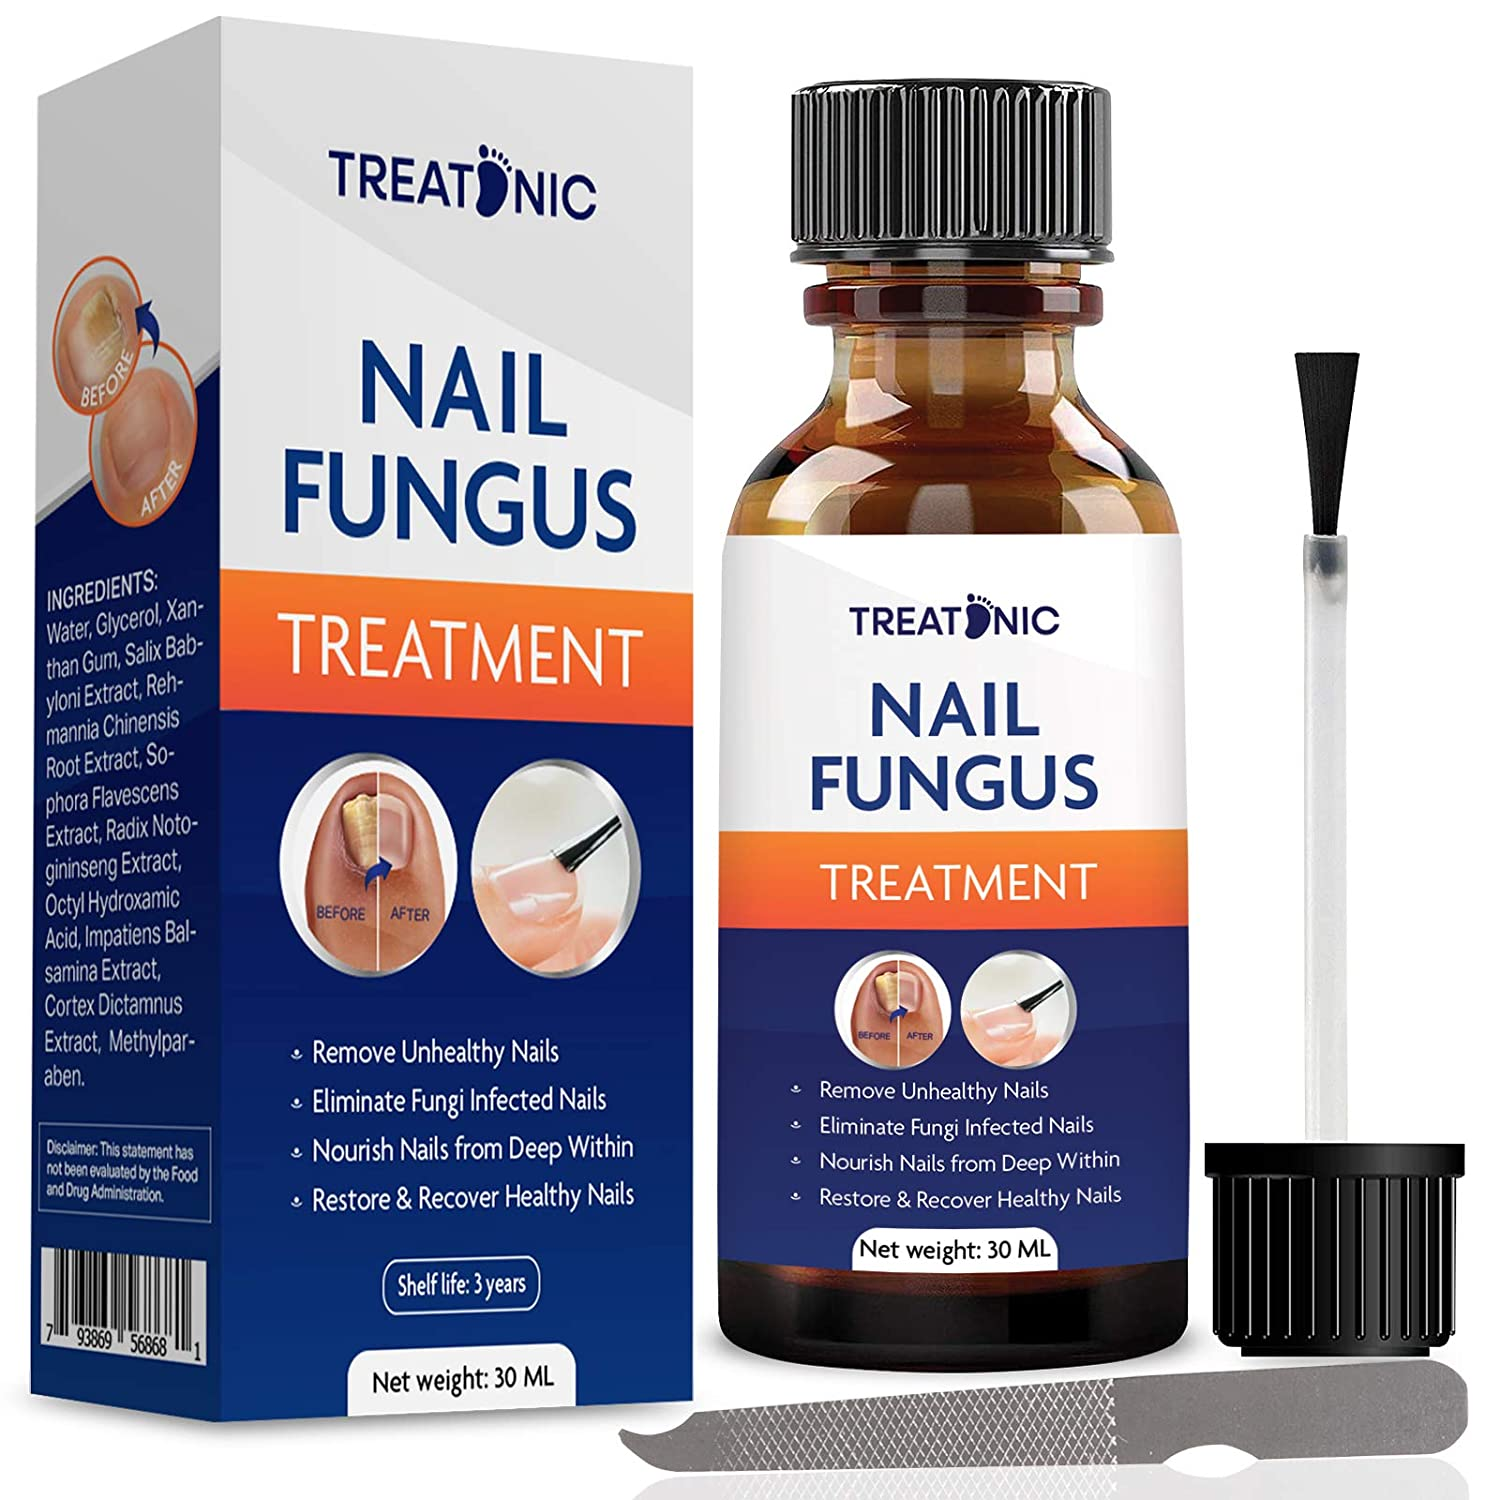 EXTRA STRONG Nail Fungal Treatment - Best Nail Repair Set, Stop Fungal Growth, Effective Fingernail & Toenail Solution, Fix & Renew Damaged, Broken, Cracked & Discolored Nails (1 OZ)